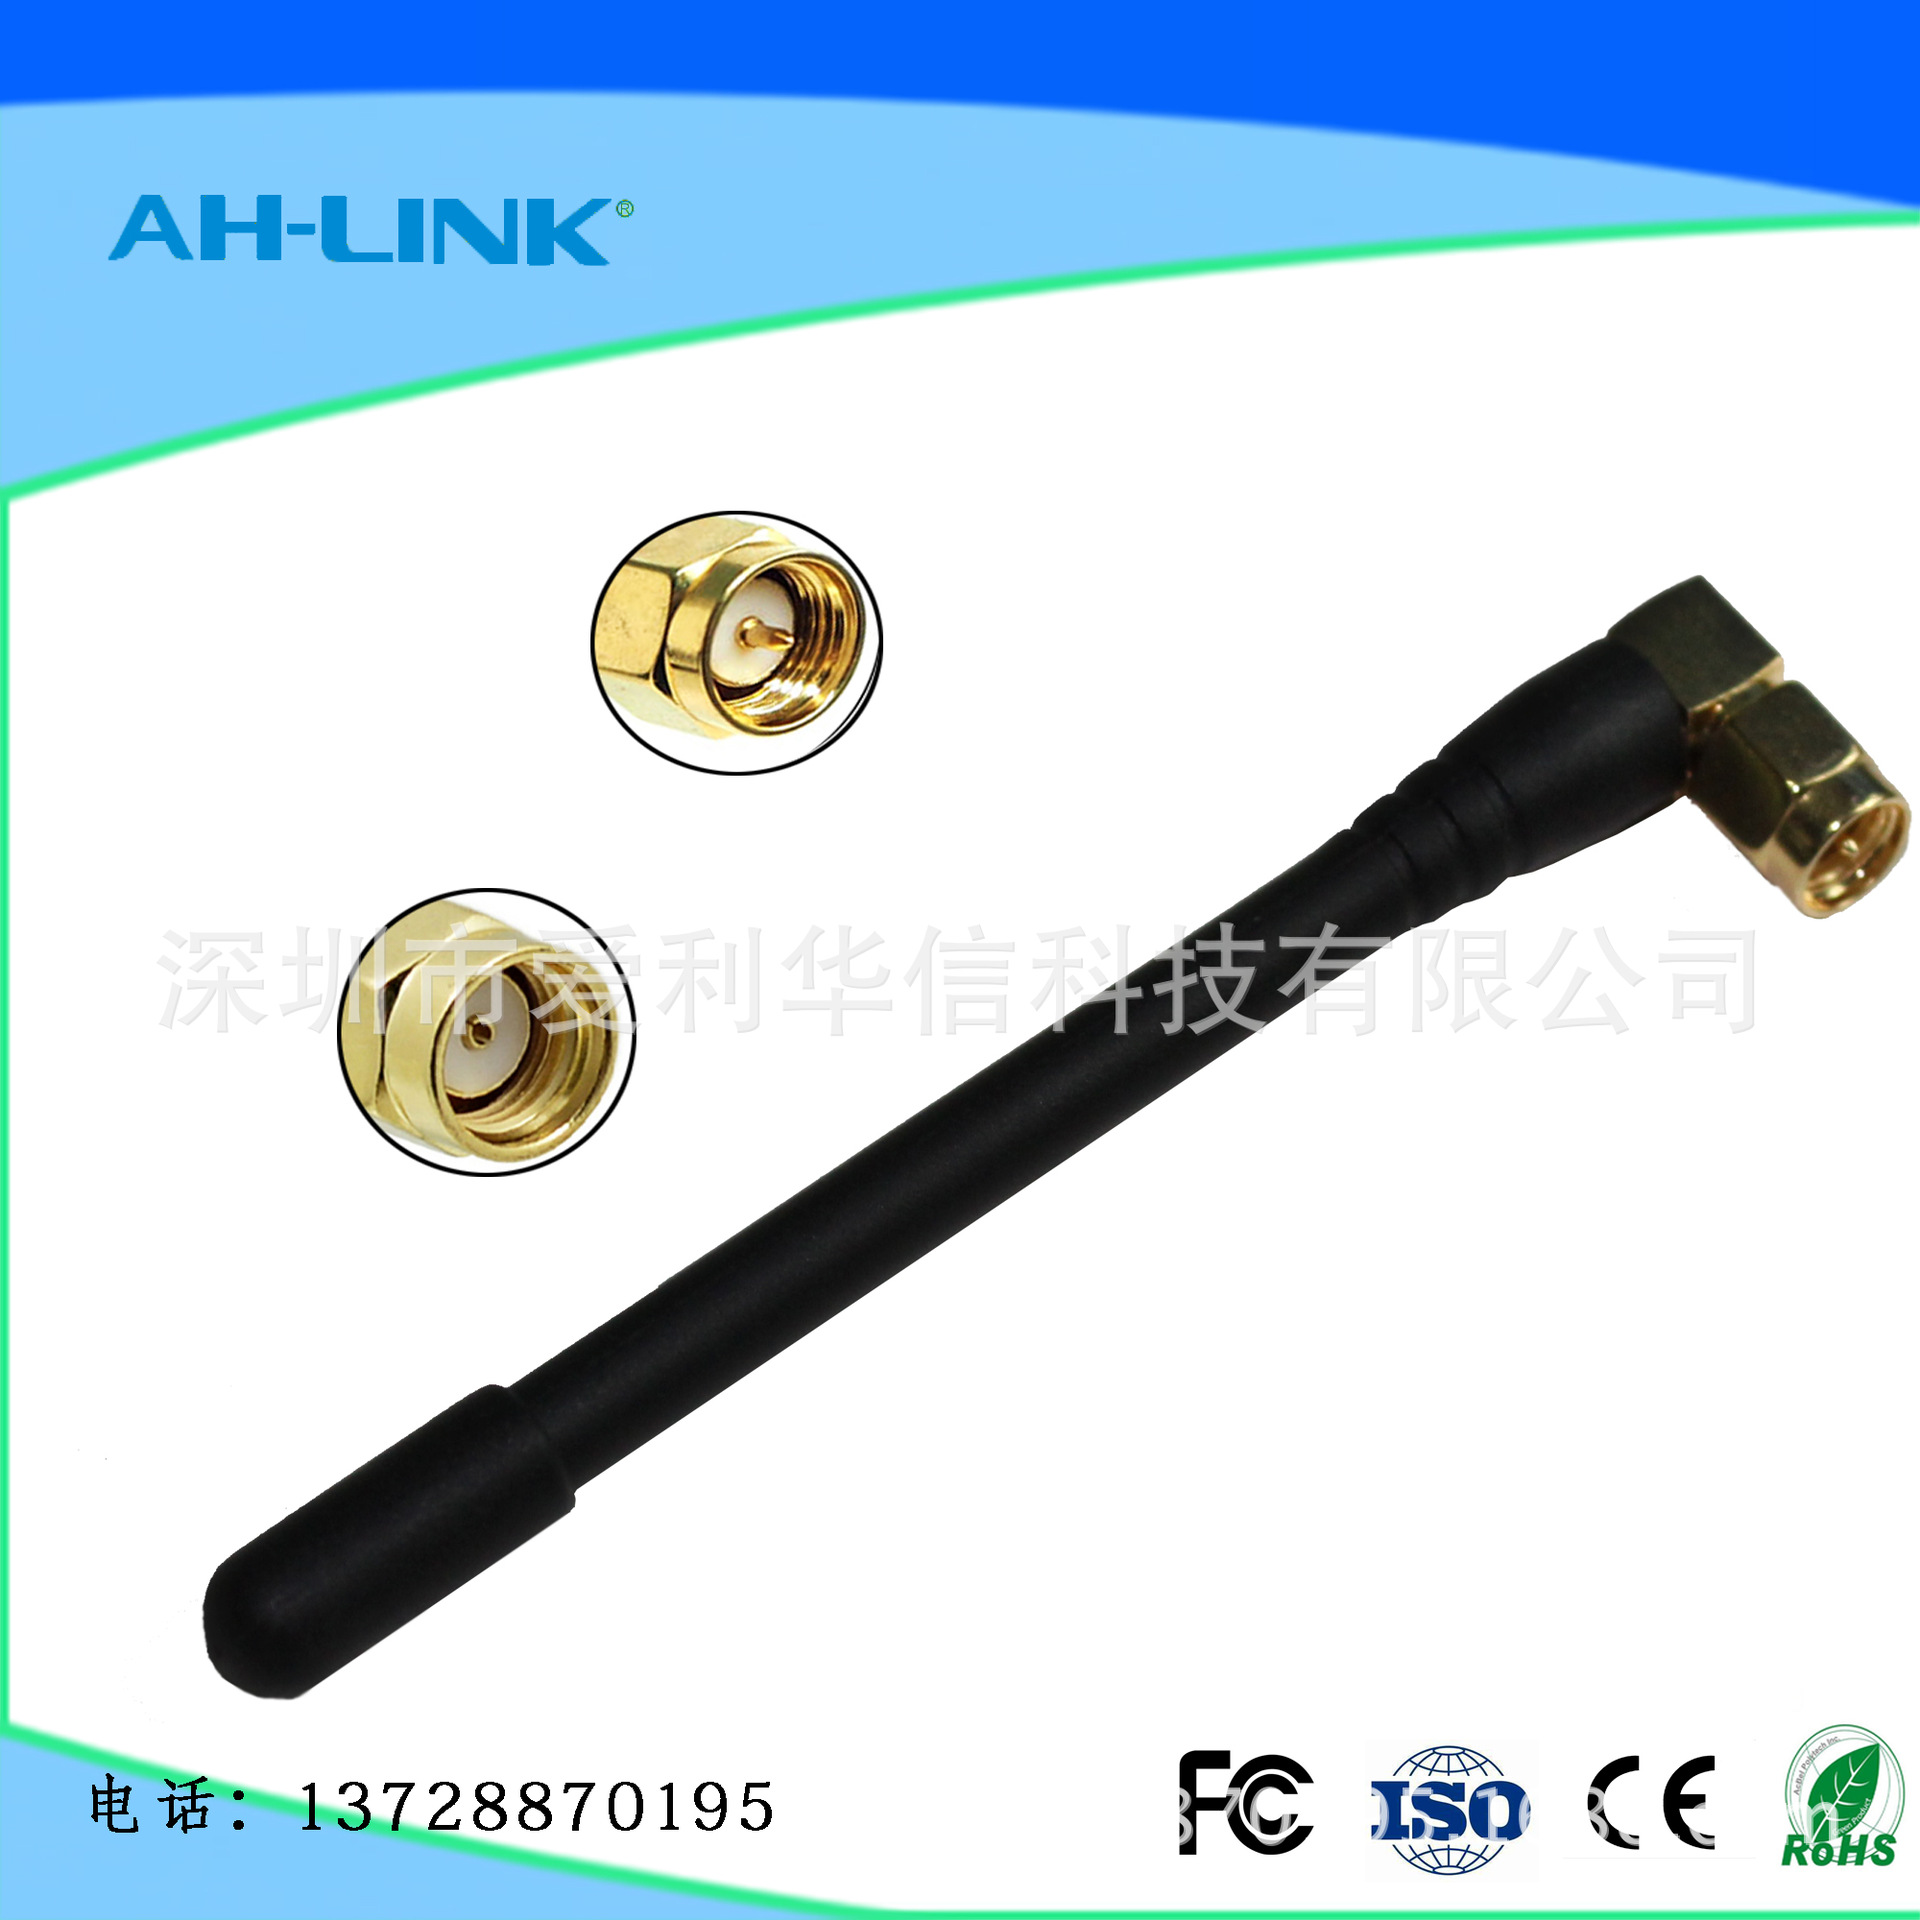 3g Module Gao Gain Antenna Wireless Network Card Antenna Router Suction Cup Room Inside And Outside Antenna Enhanced Signal